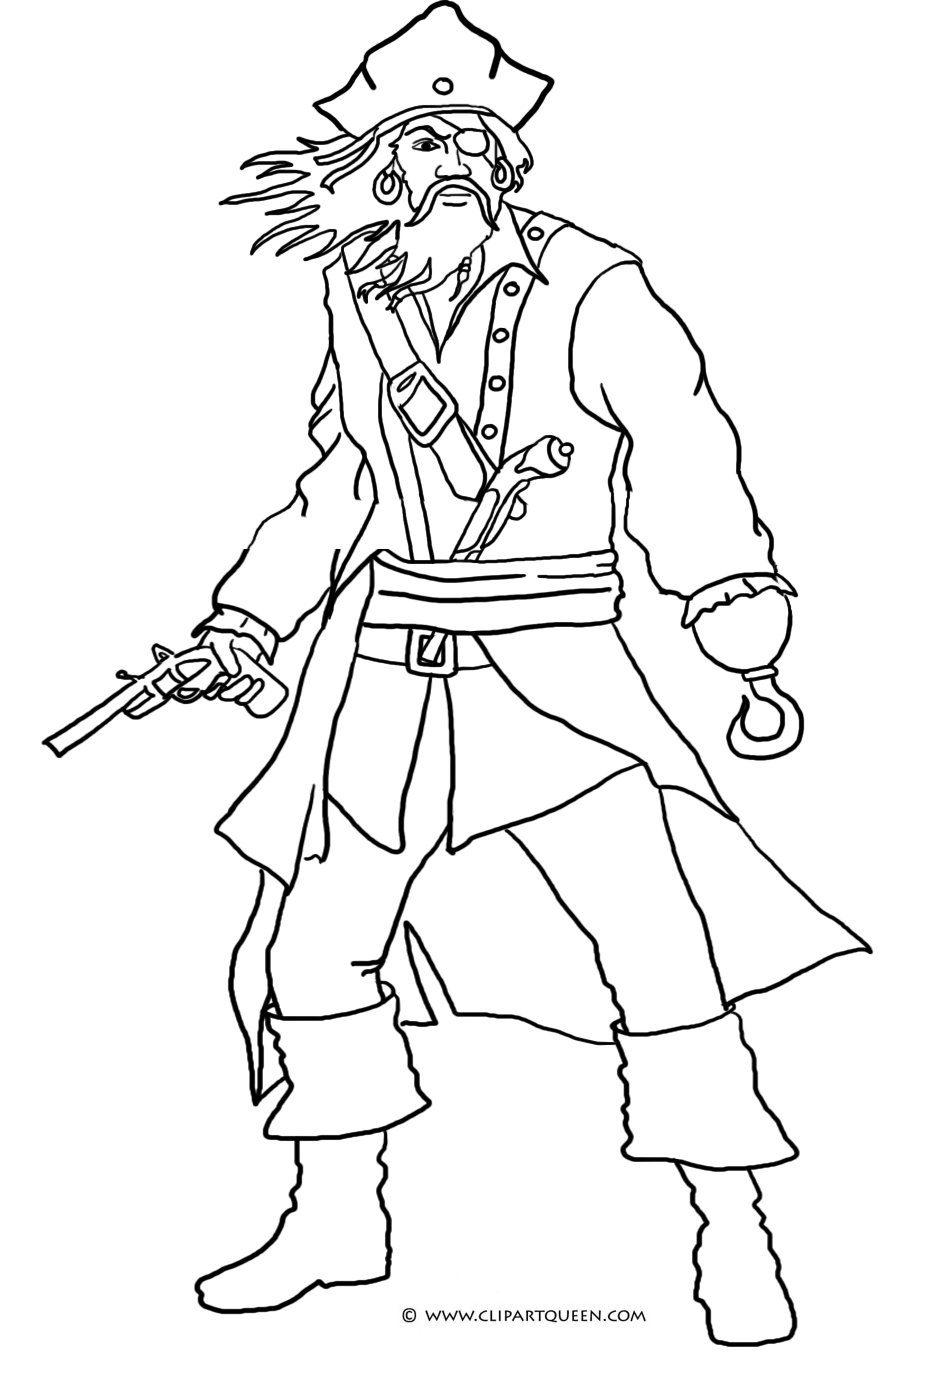 pirates pictures to colour free printable pirate coloring pages for kids pictures pirates colour to